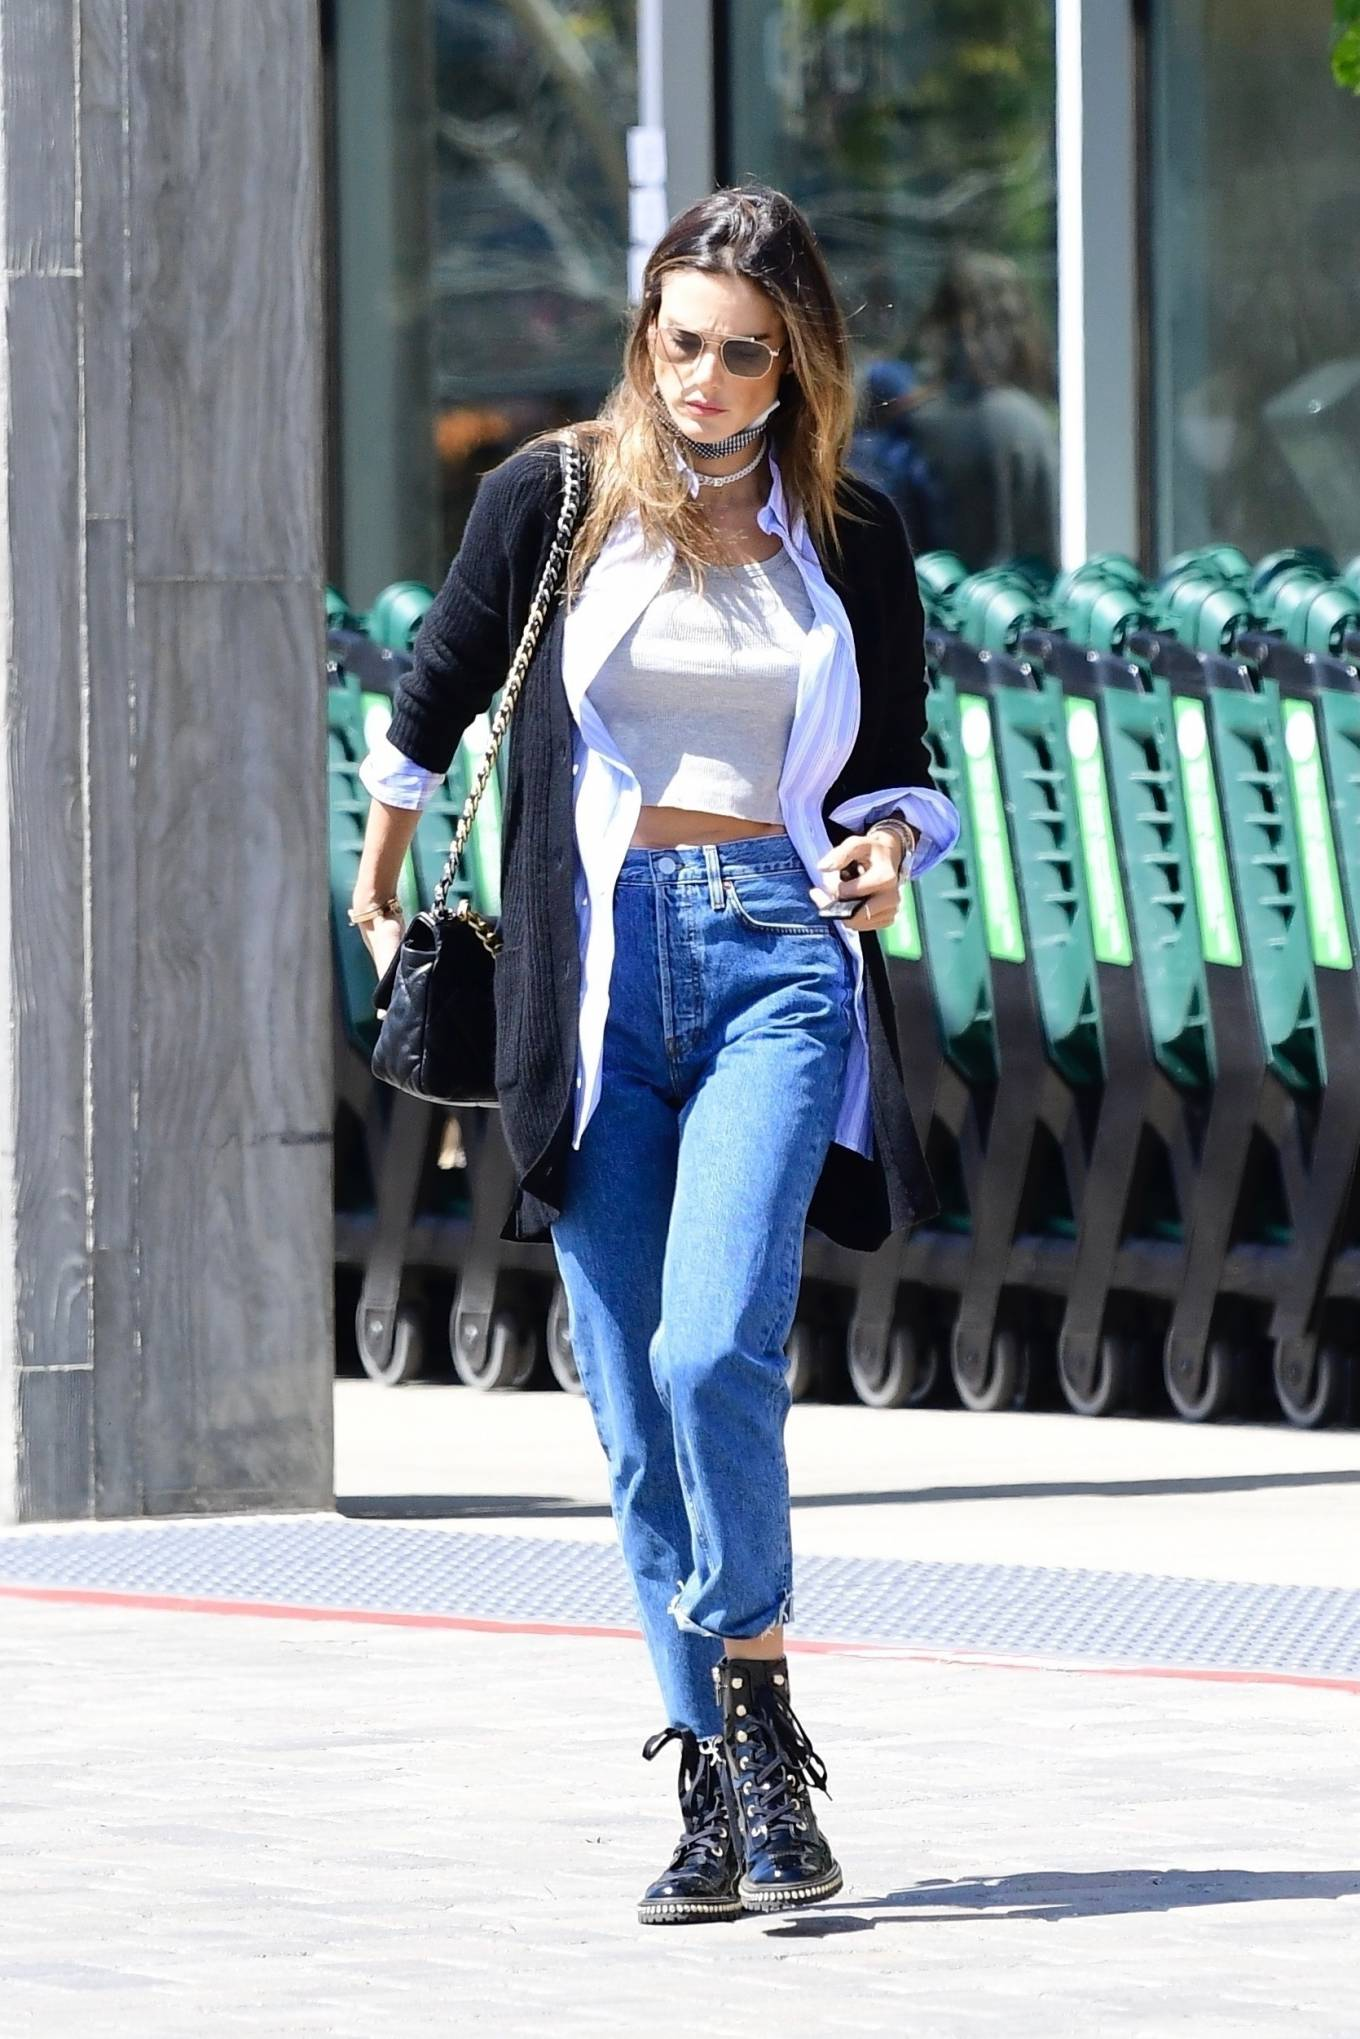 Alessandra Ambrosio, Schutz boots, black boots, lilac shirt, black Chanel purse, patent-leather, round, lace-up, block heel, grey crop top, black sunglasses, ankle, dark blue jeans, zip up. Alessandra Ambrosio wearing round black patent-leather ankle boots by Schutz with block heel